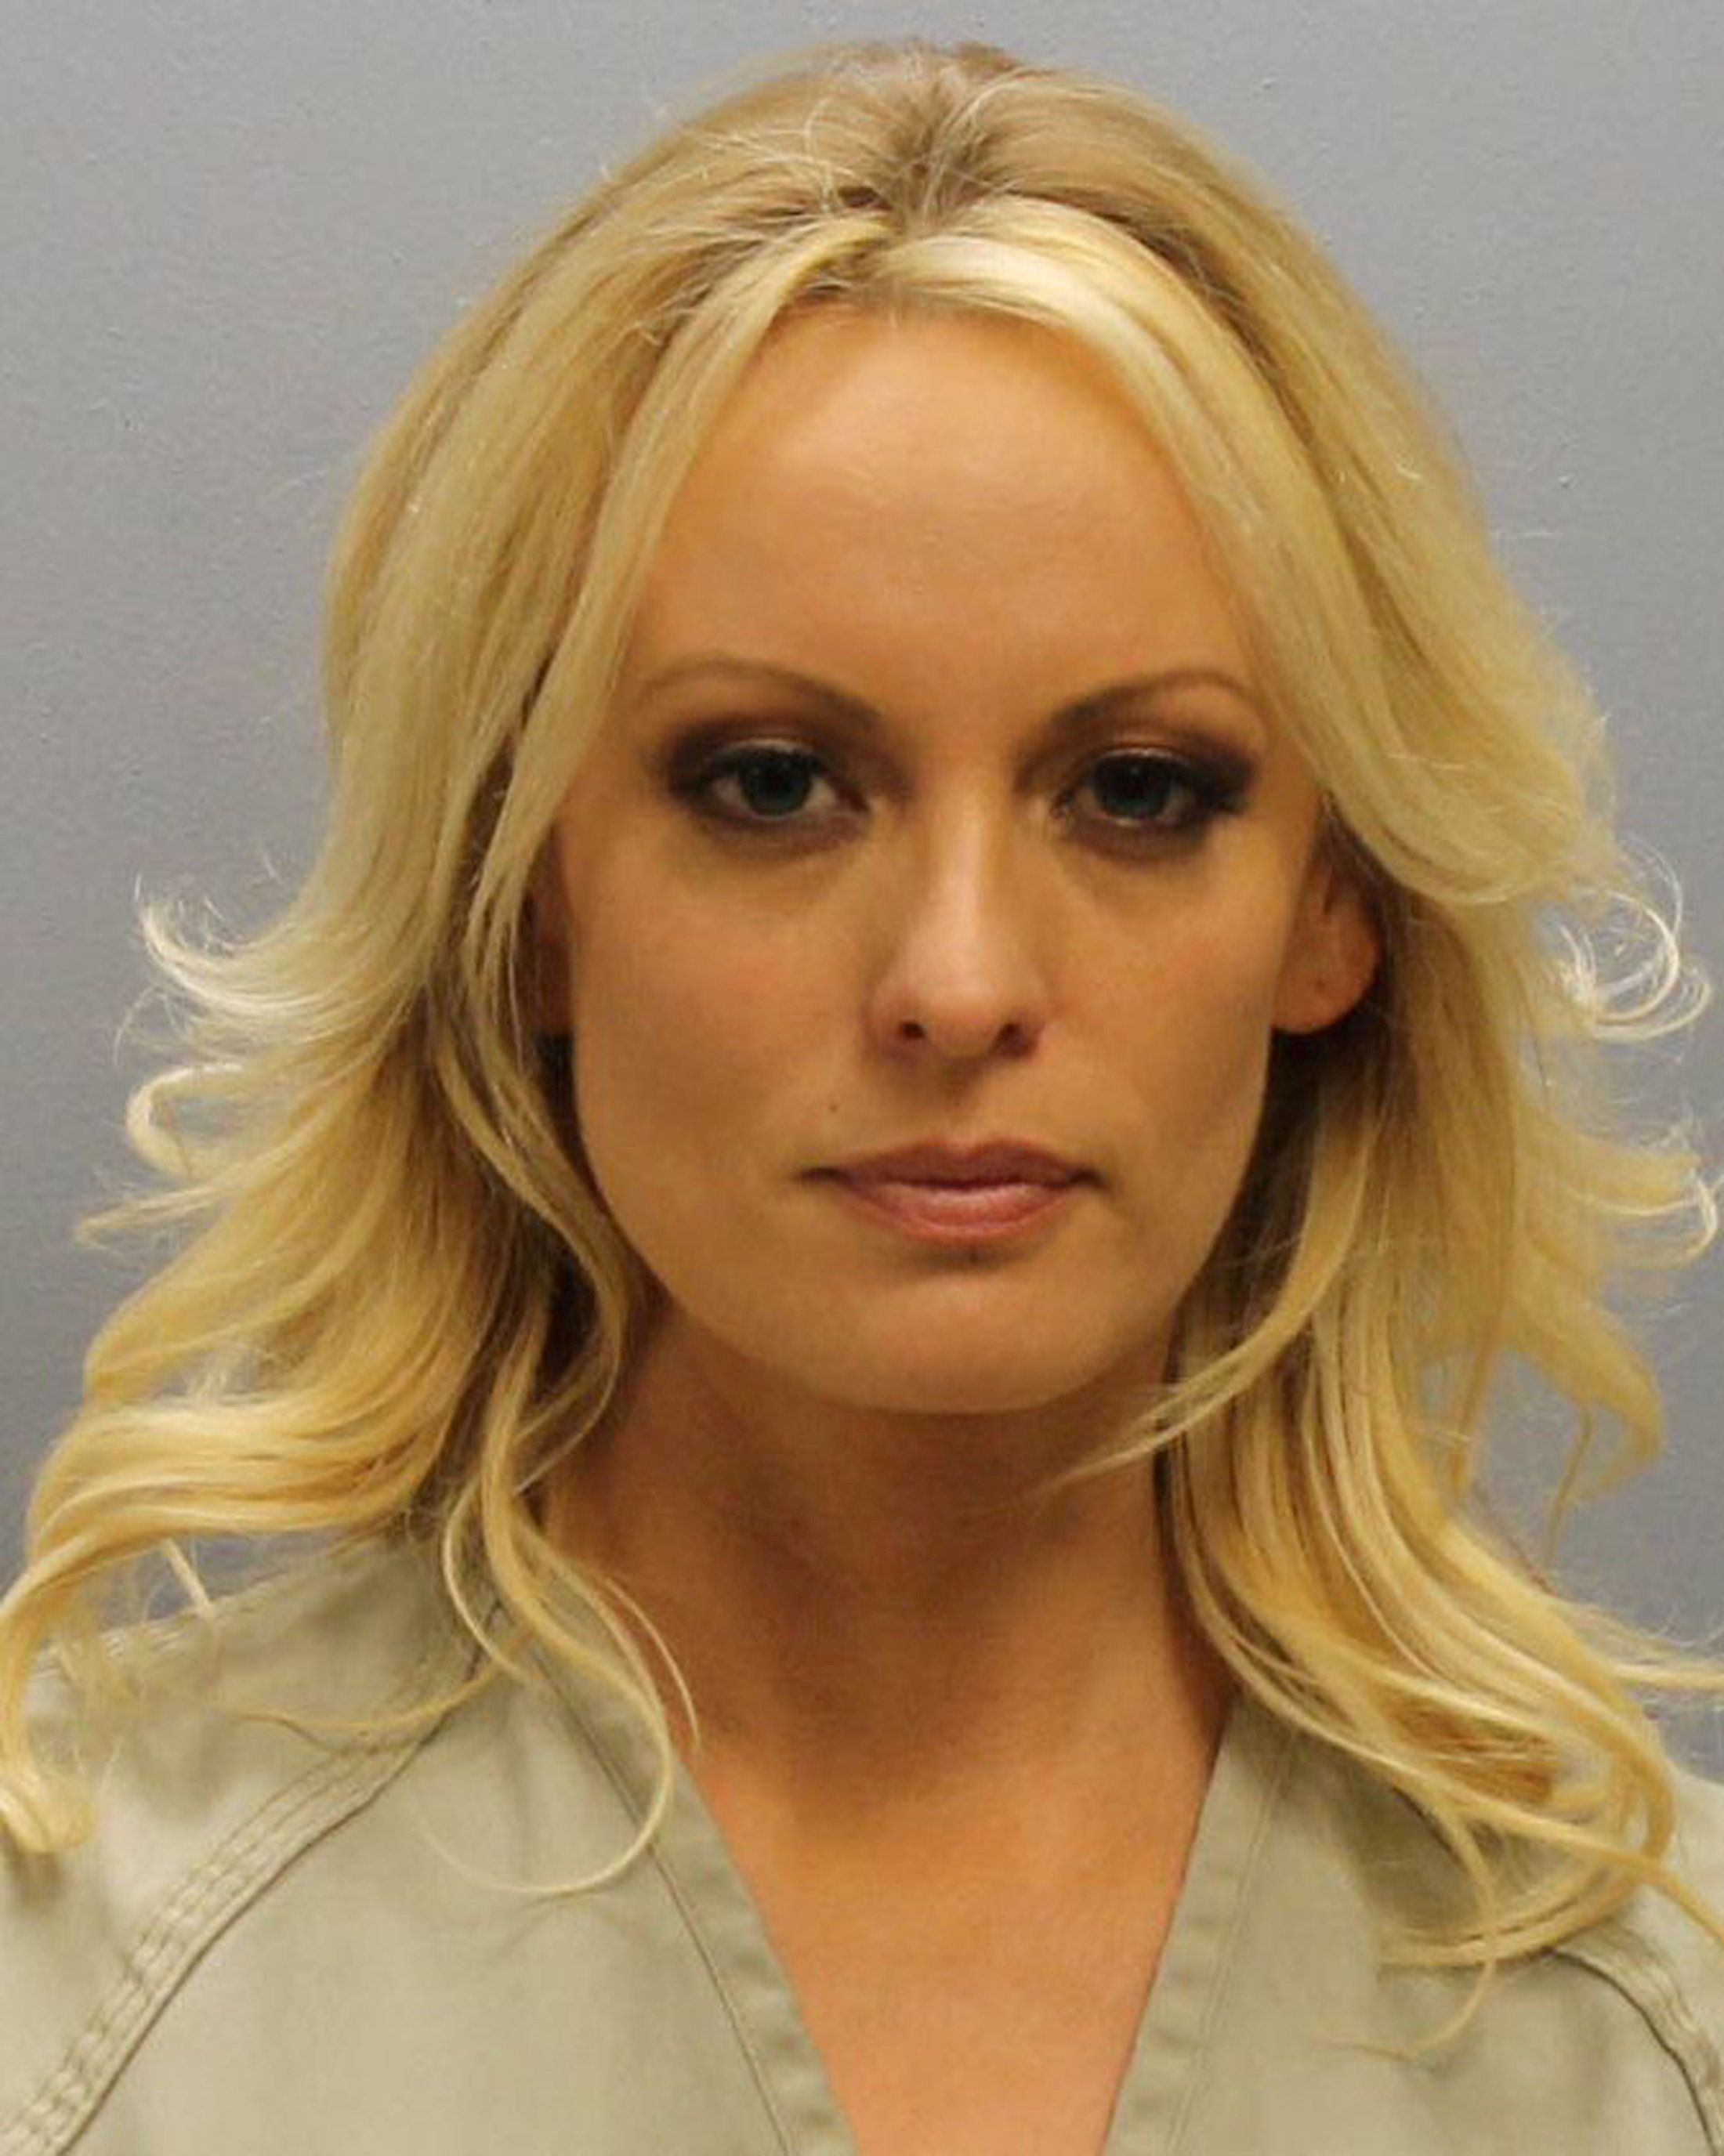 Stormy Daniels was arrested in Ohio by the Columbus Police Department's vice section in August. The charges were dropped agai